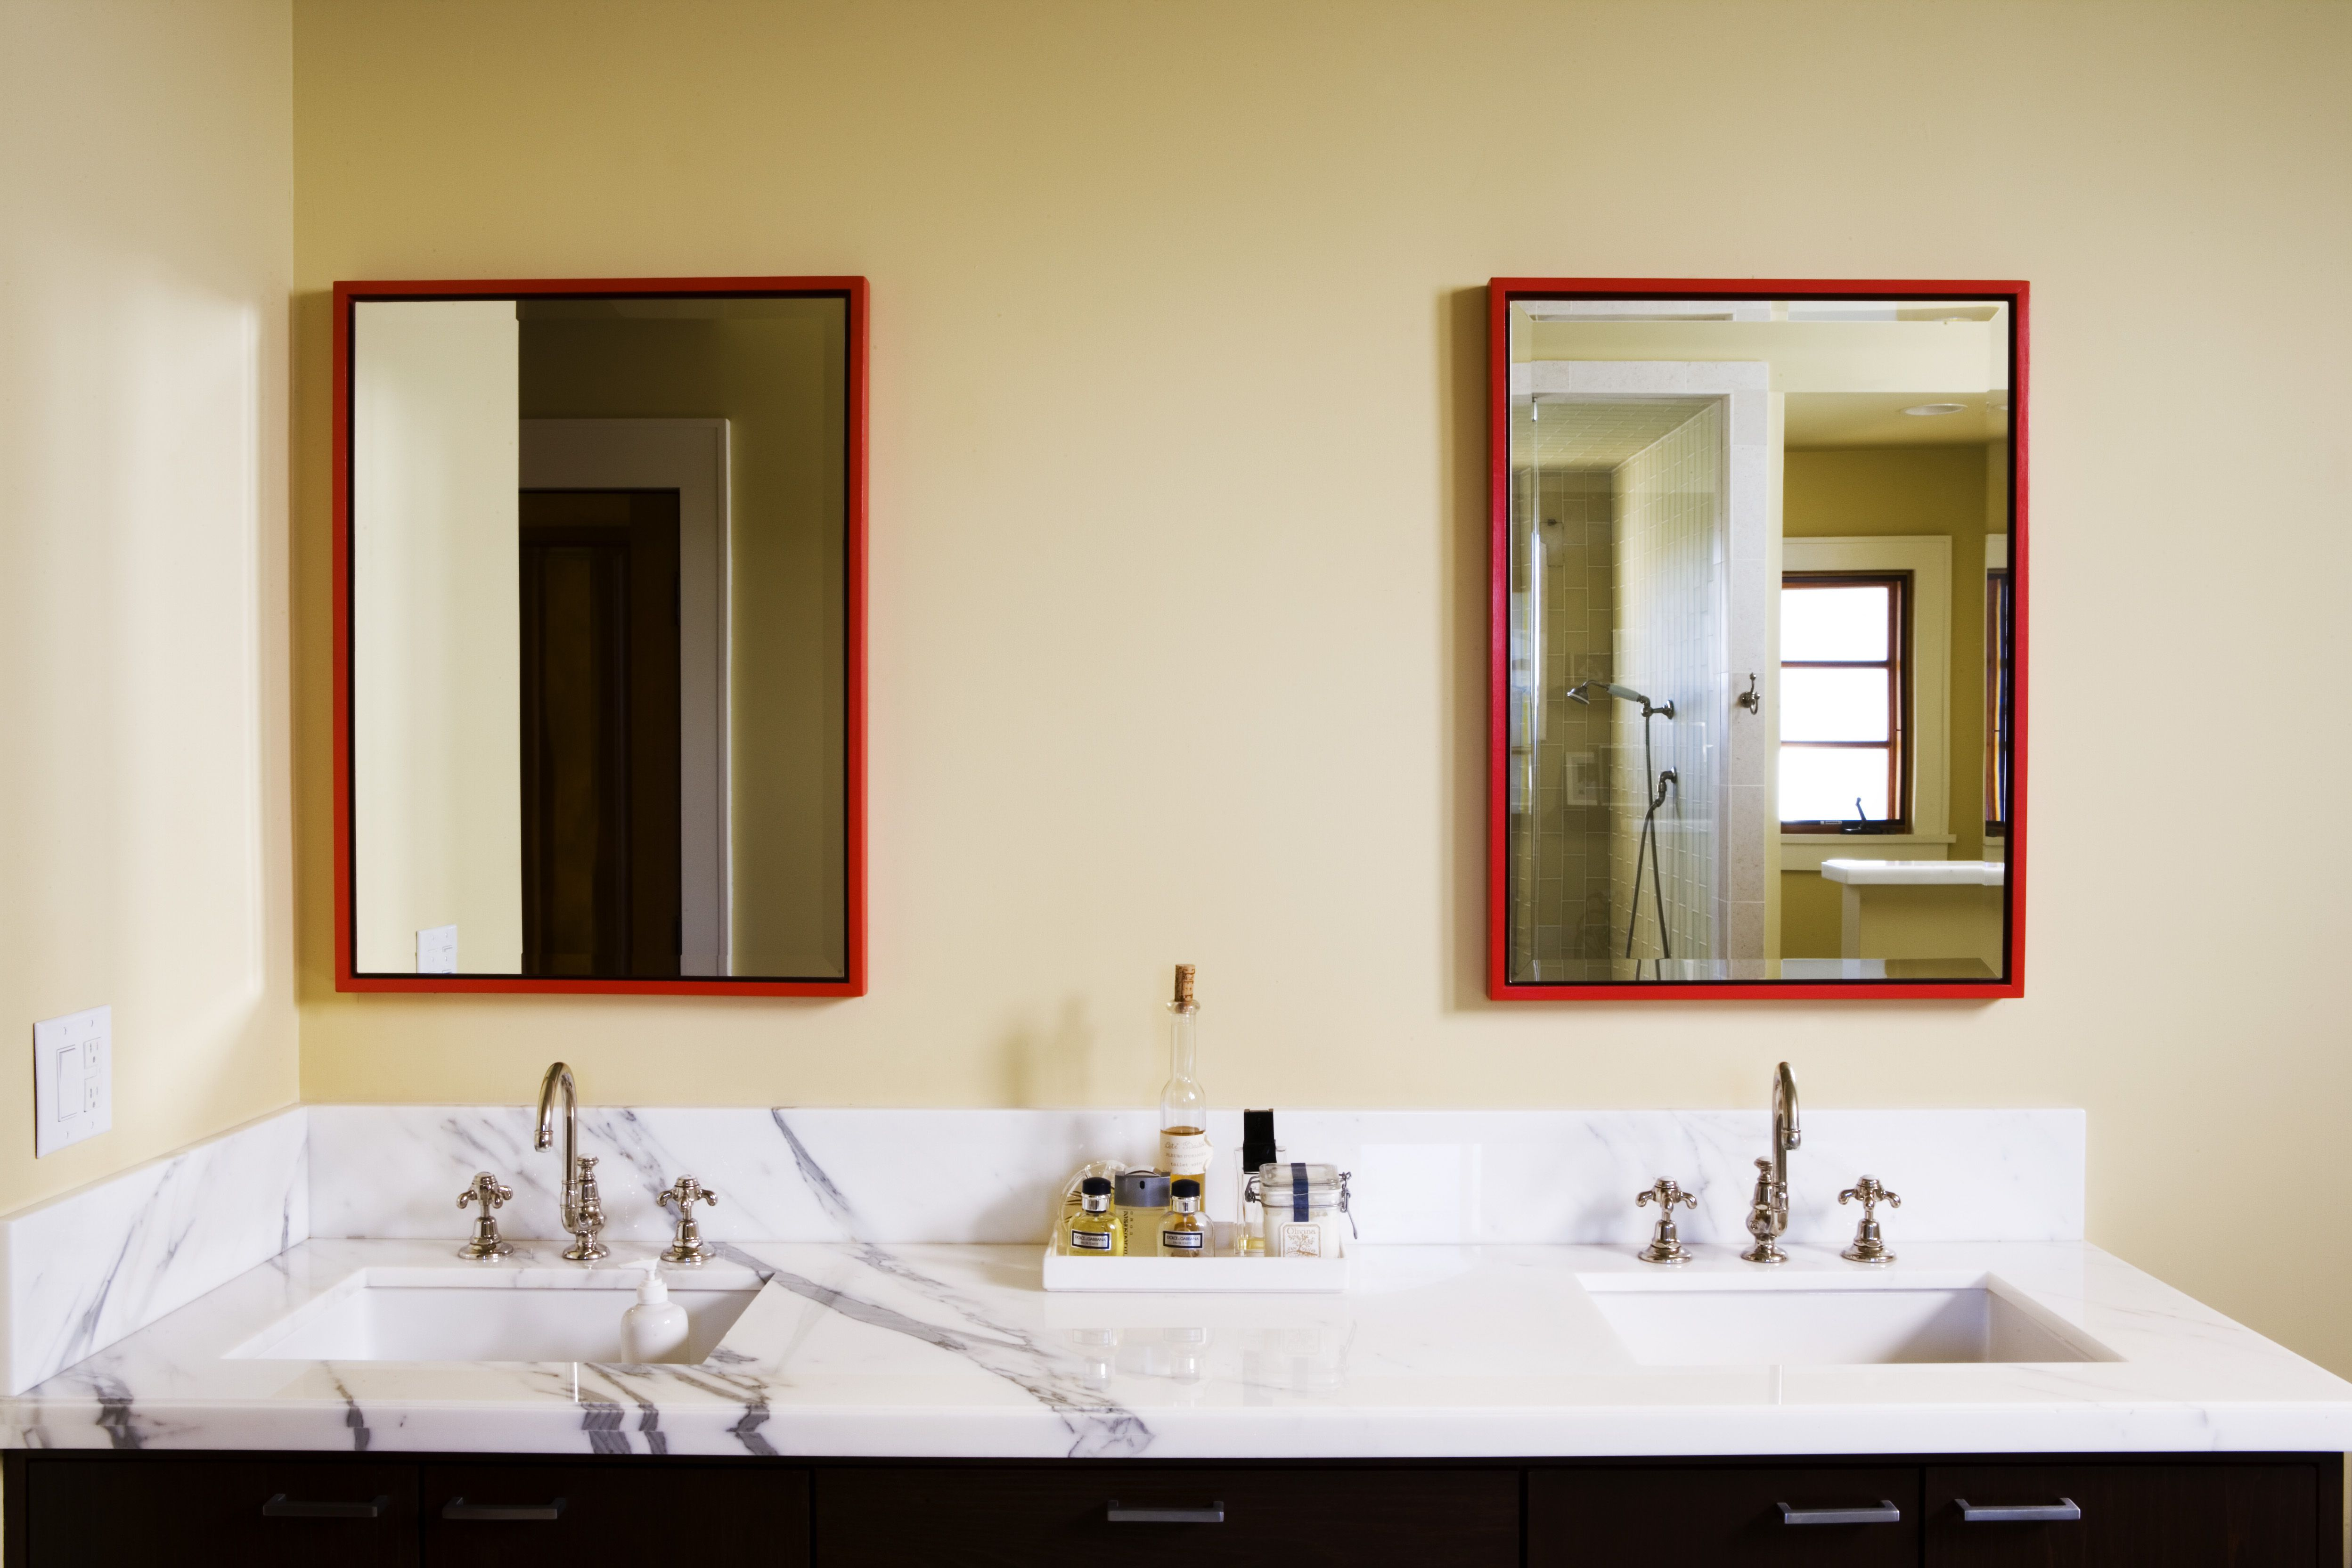 Bathroom cabinets sinks - Installing Two Sinks With Only One Drain Bathroom Sinks